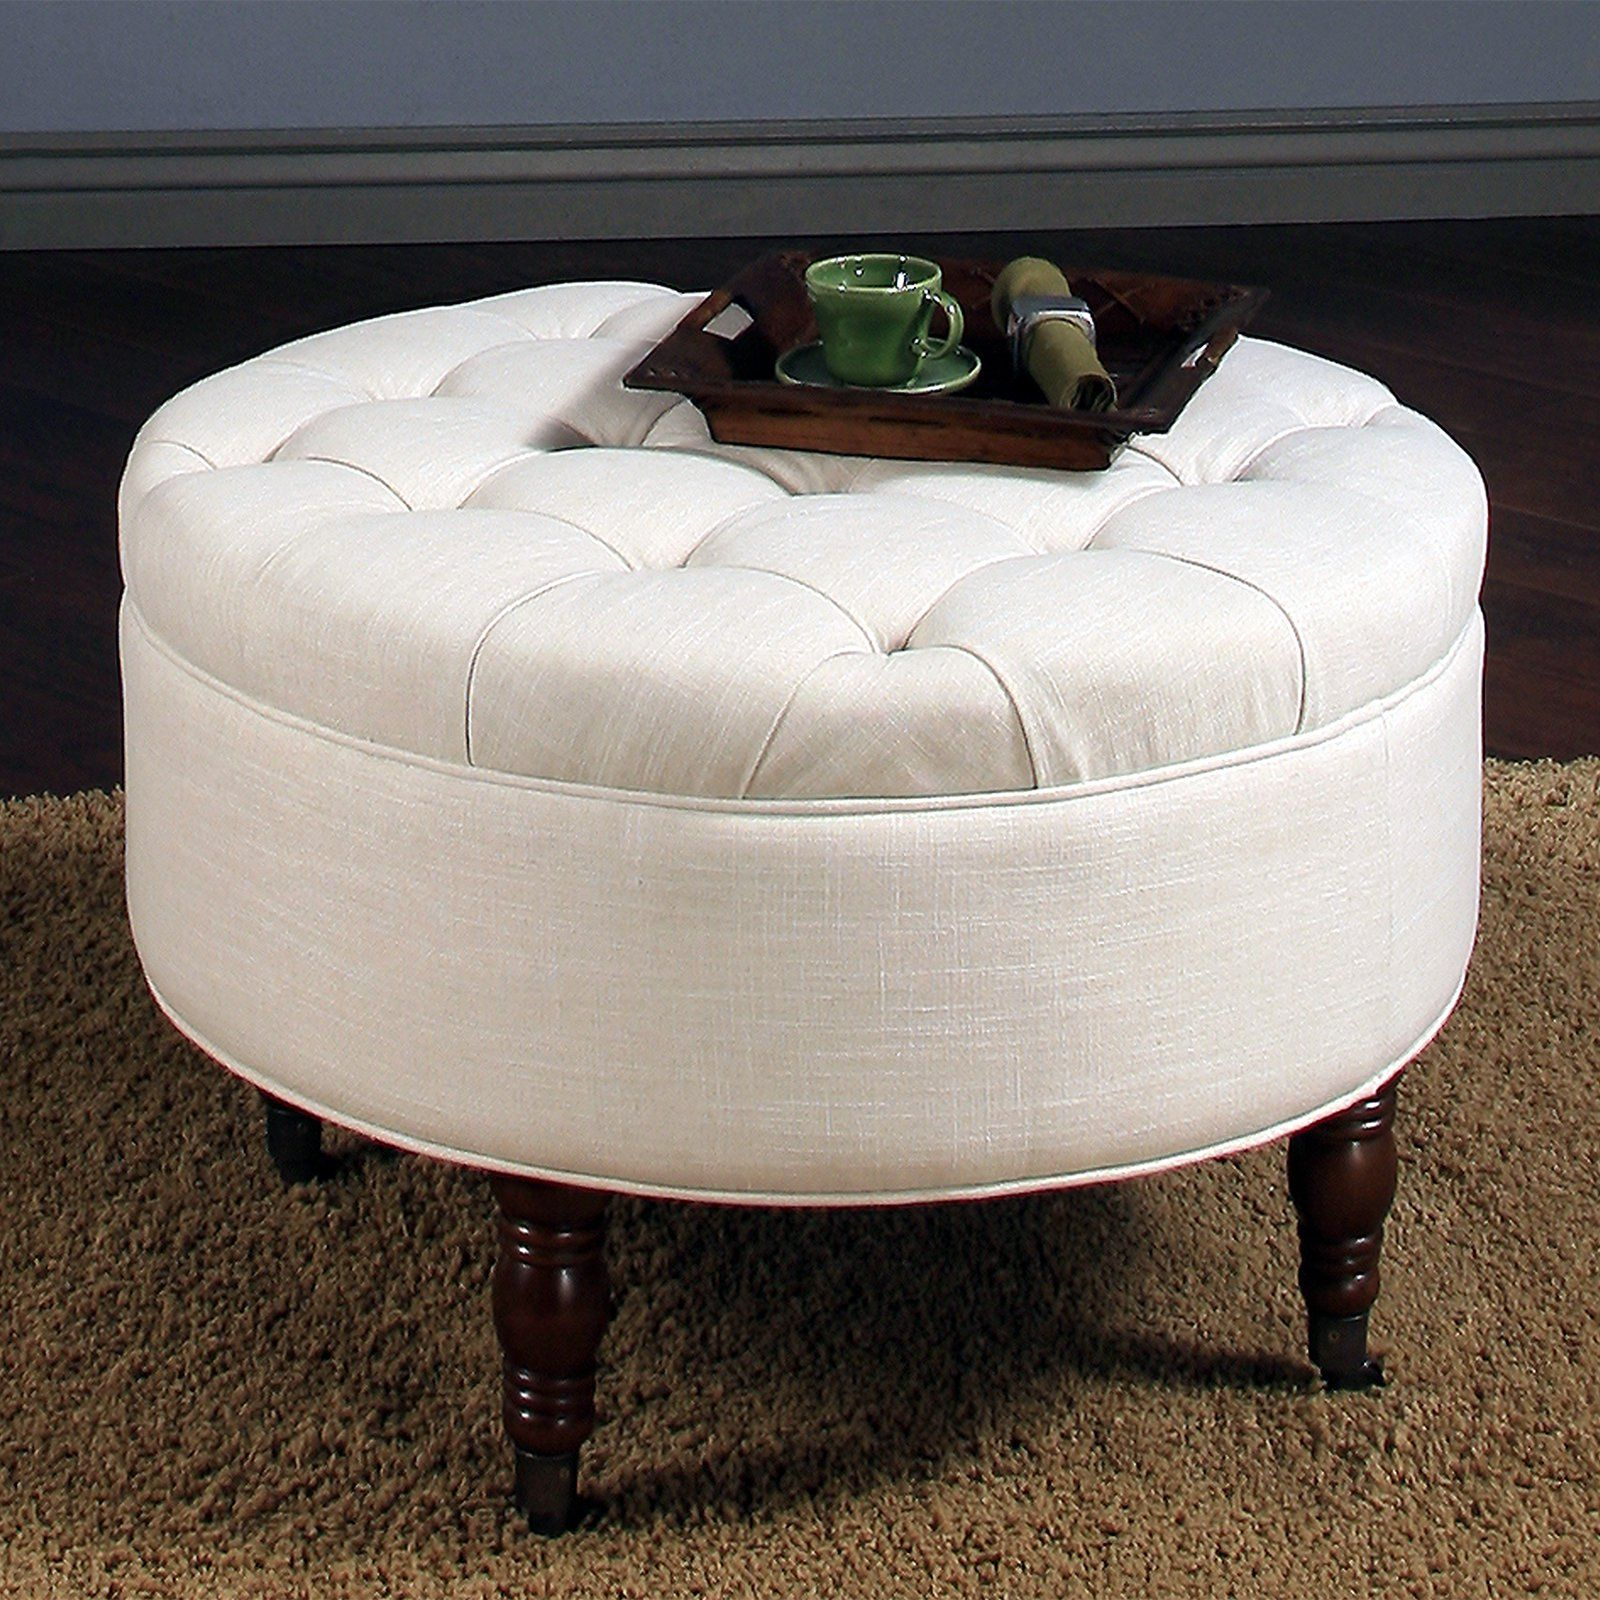 Pleasing Abbyson Avernce Round Tufted Ottoman White In 2019 Ibusinesslaw Wood Chair Design Ideas Ibusinesslaworg